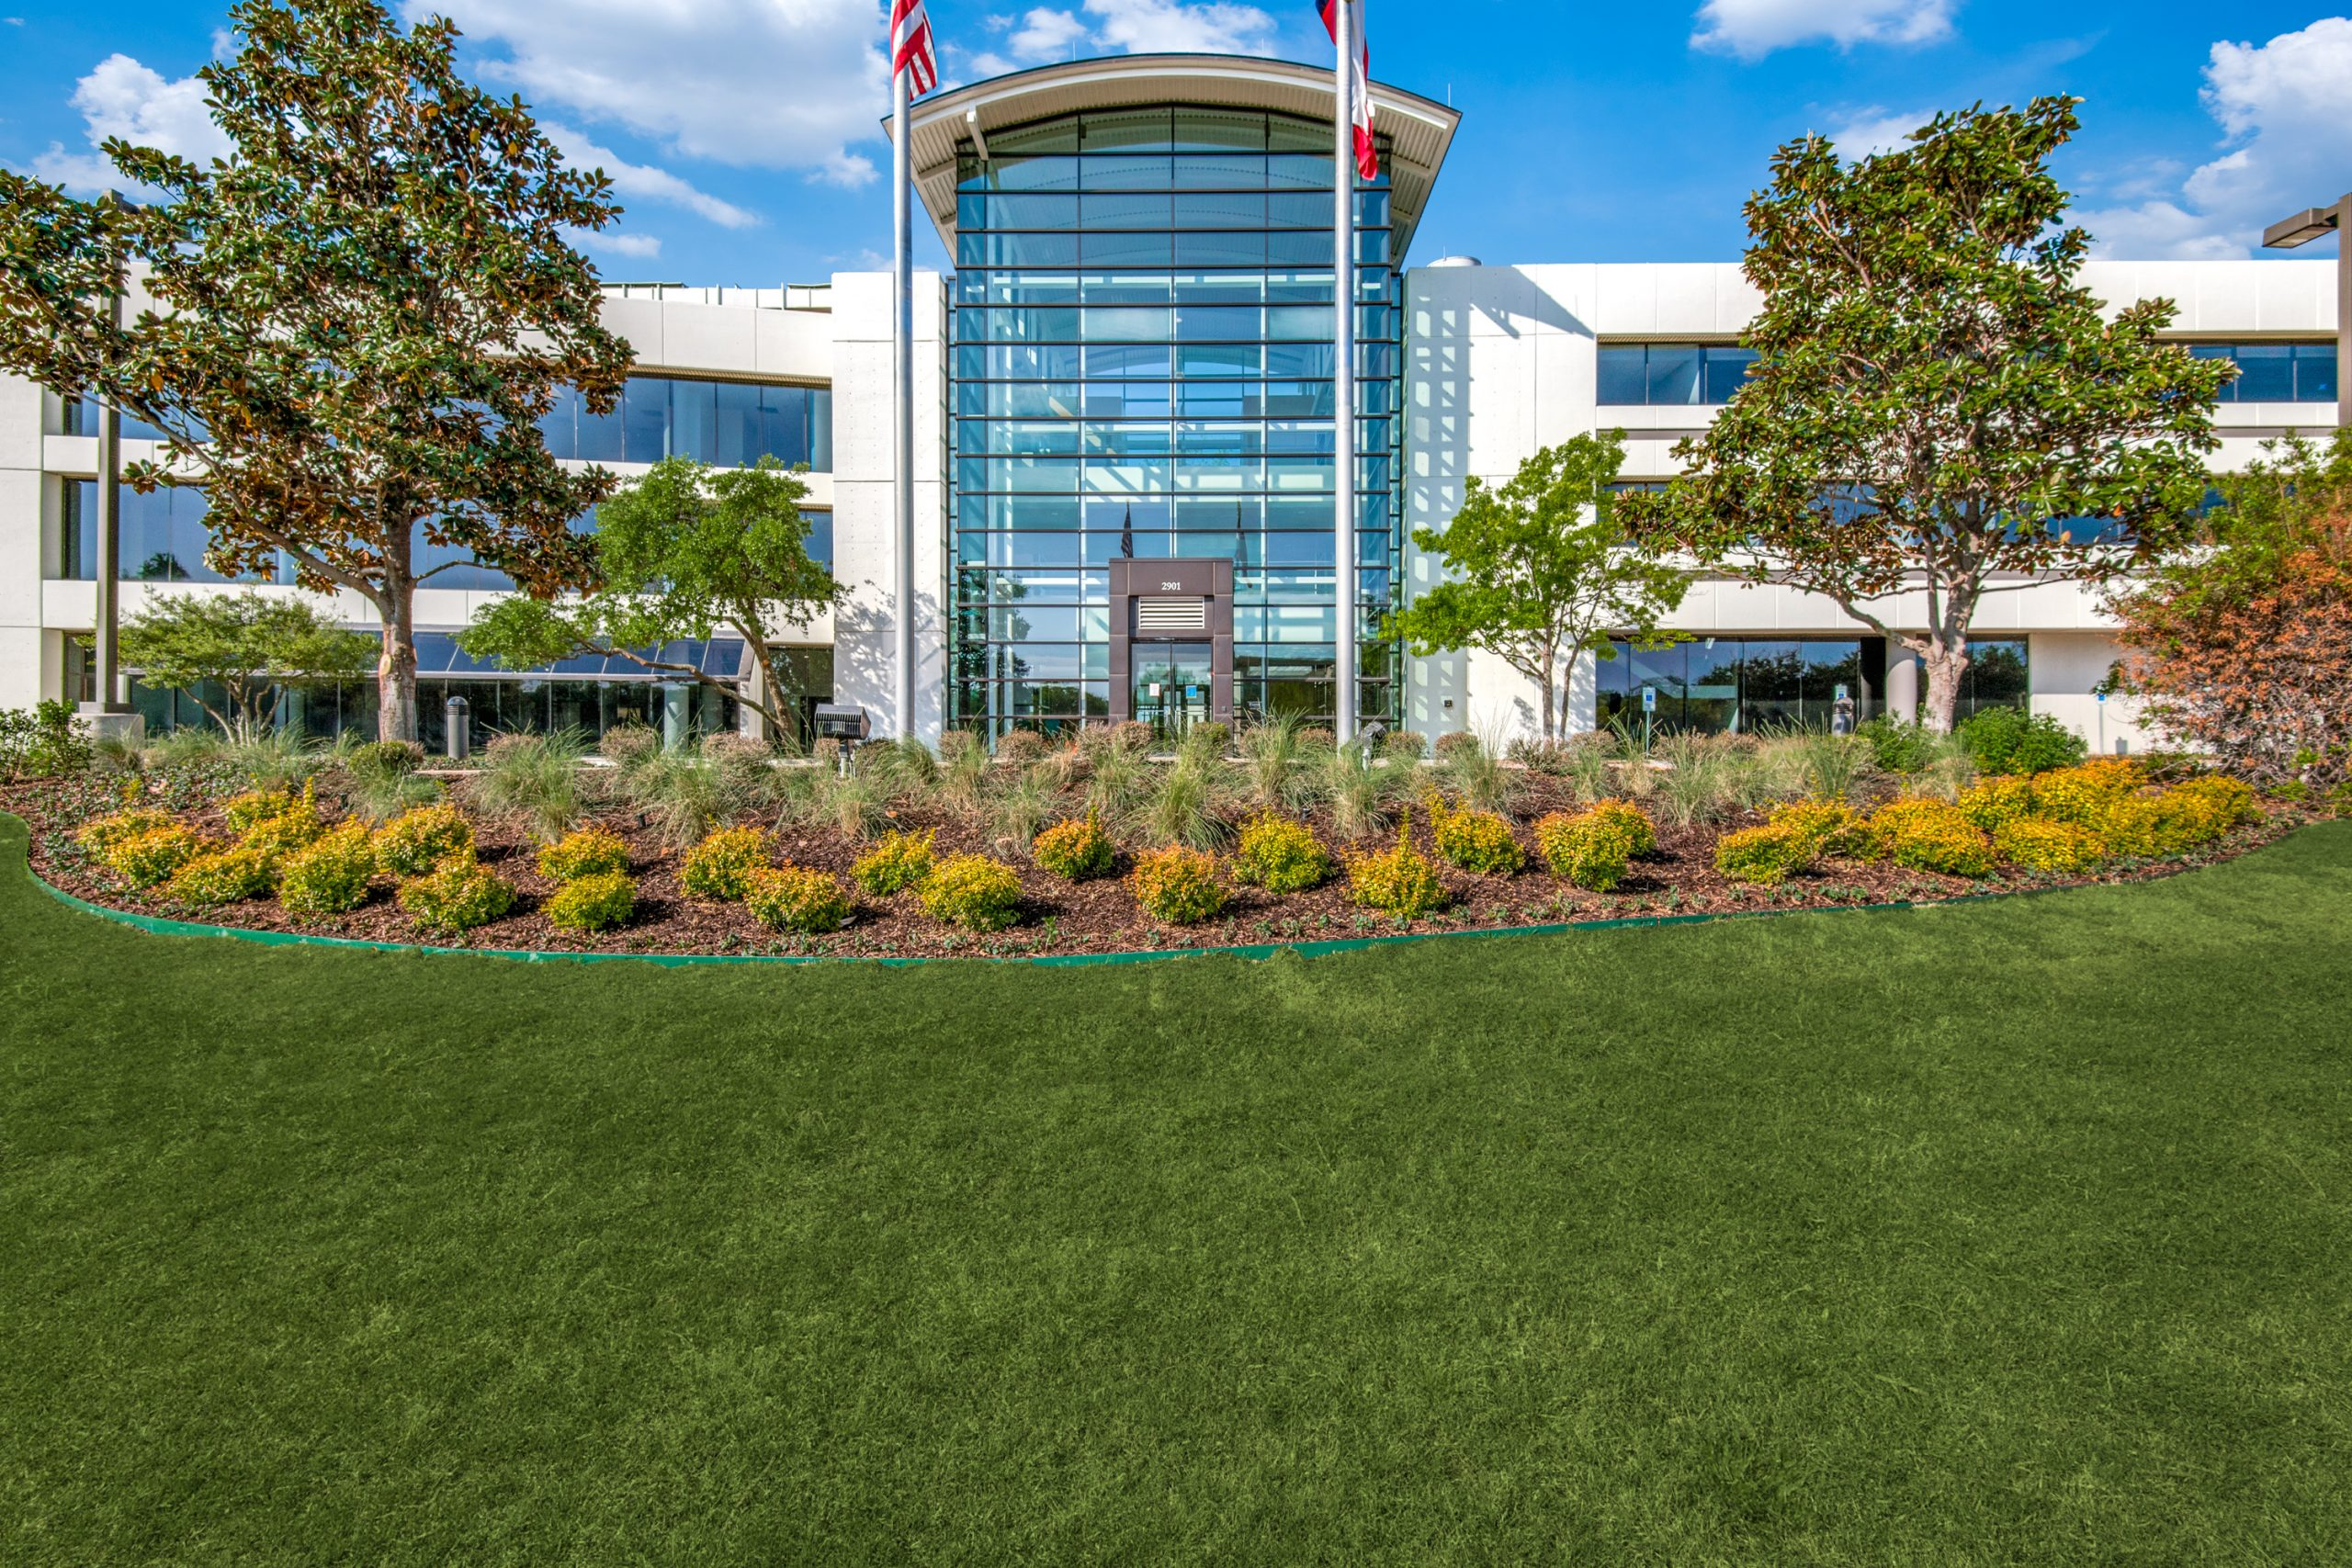 2901-kinwest-pkwy-irving-tx-75063-High-Res-7